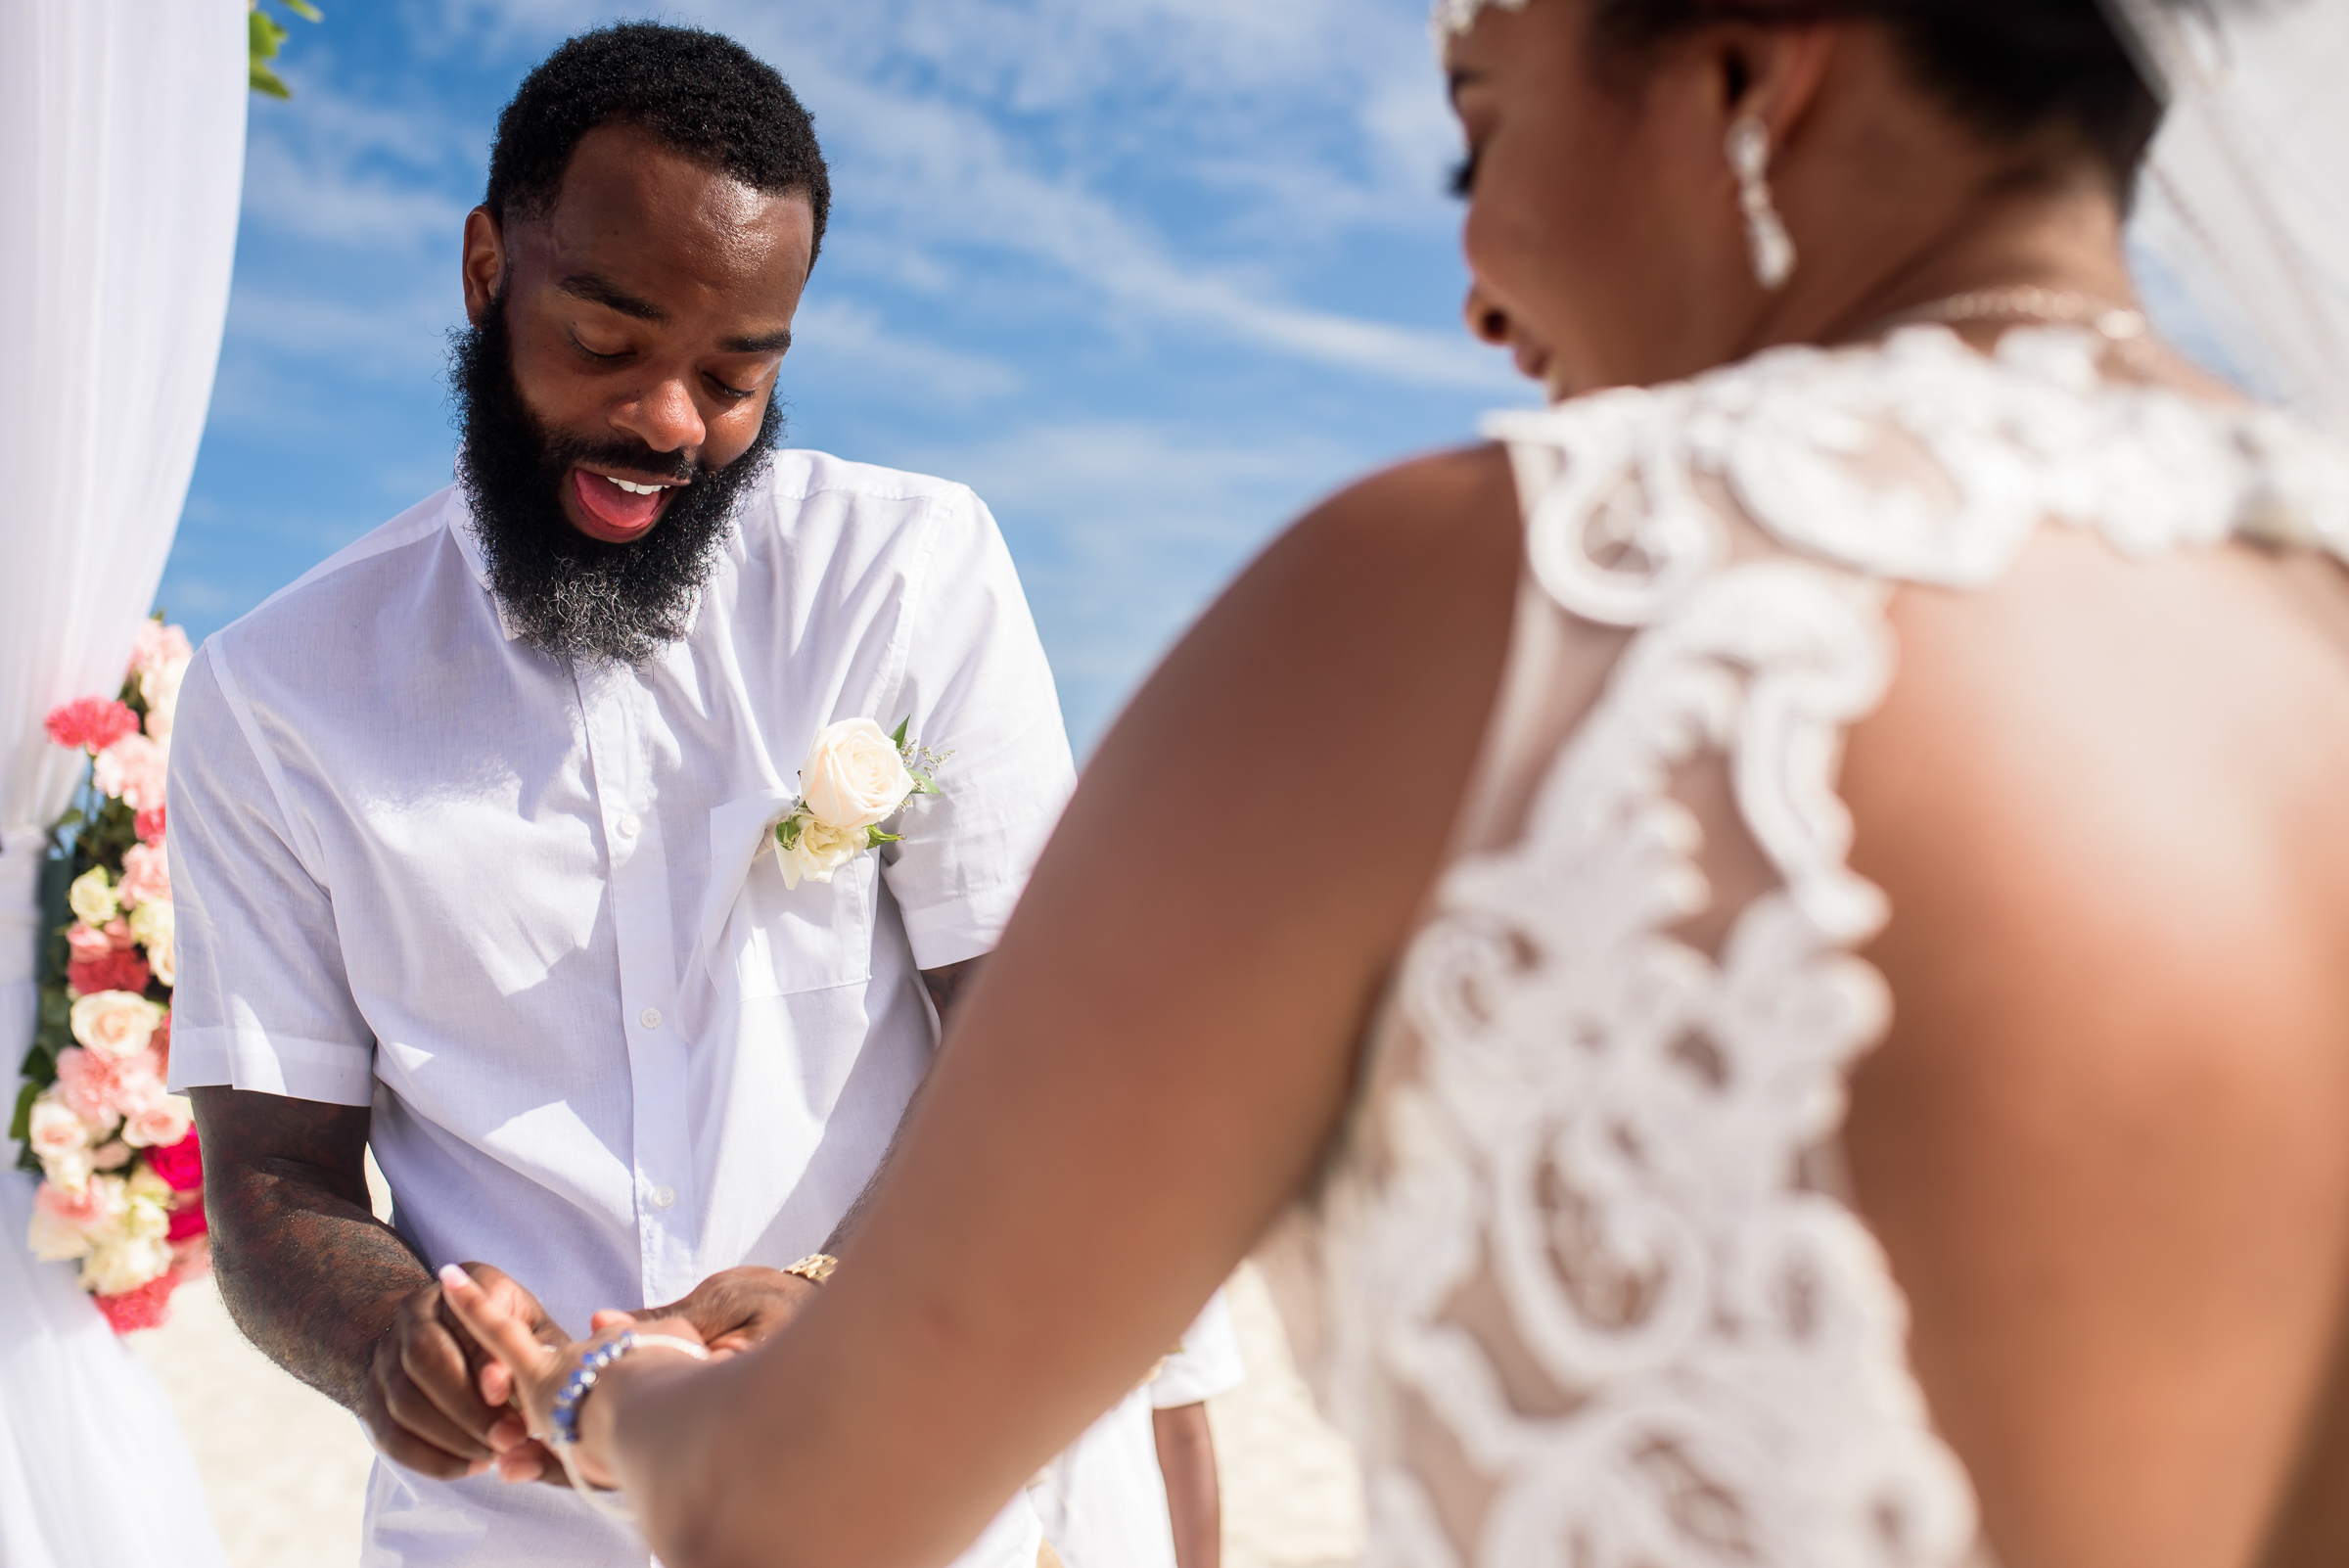 groom-puts-ring-on-bride-in-outdoor-ceremony-ashleigh-bing-photography